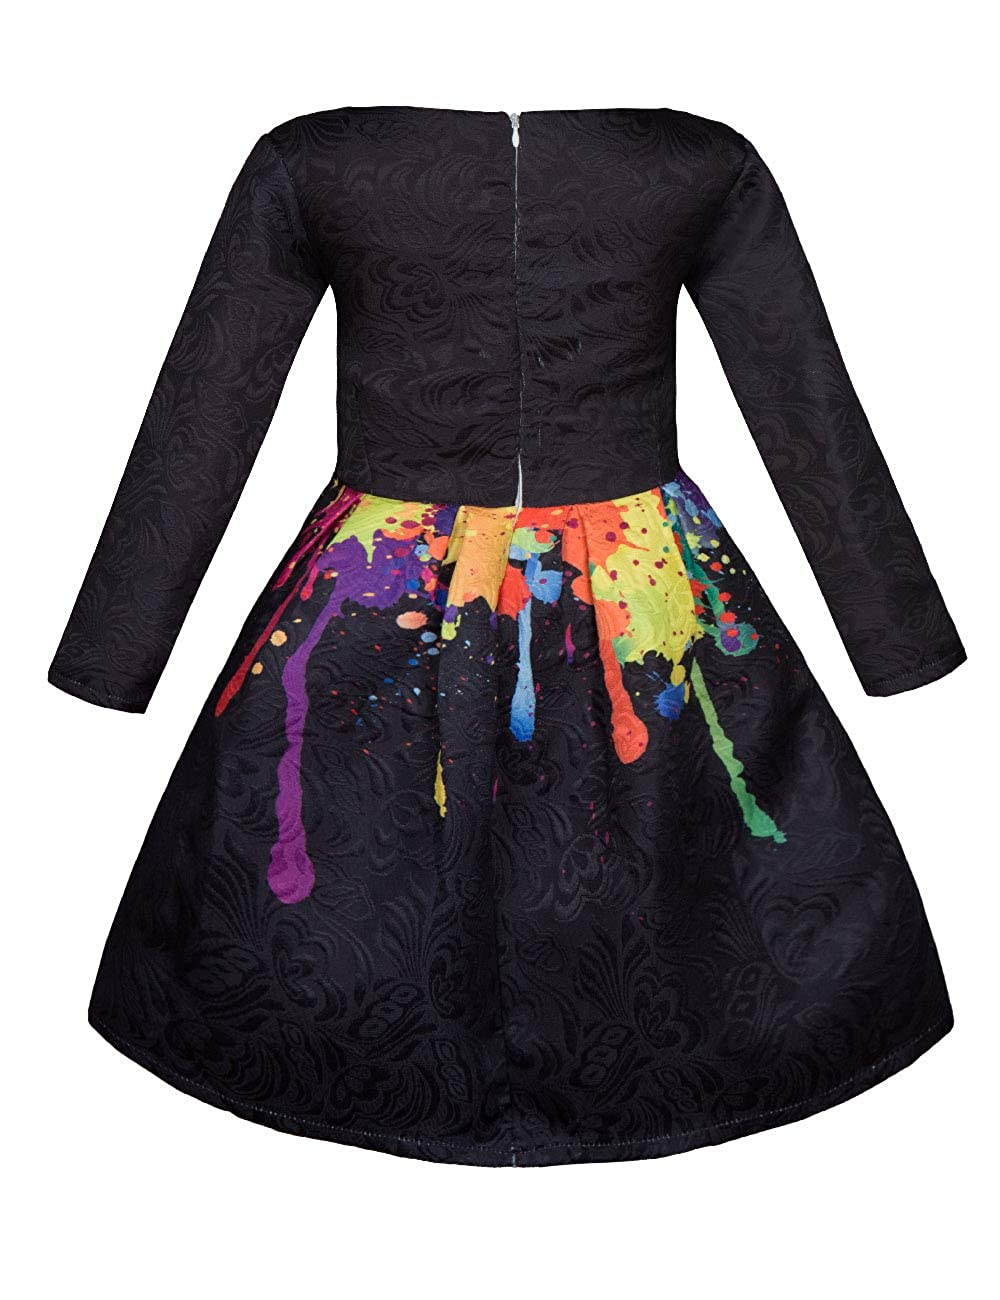 f49100db29af Amazon.com  Girls Kids Casual Dress Paint Butterfly Rose Animal Fall Long  Sleeve Sleeveless Dresses  Clothing